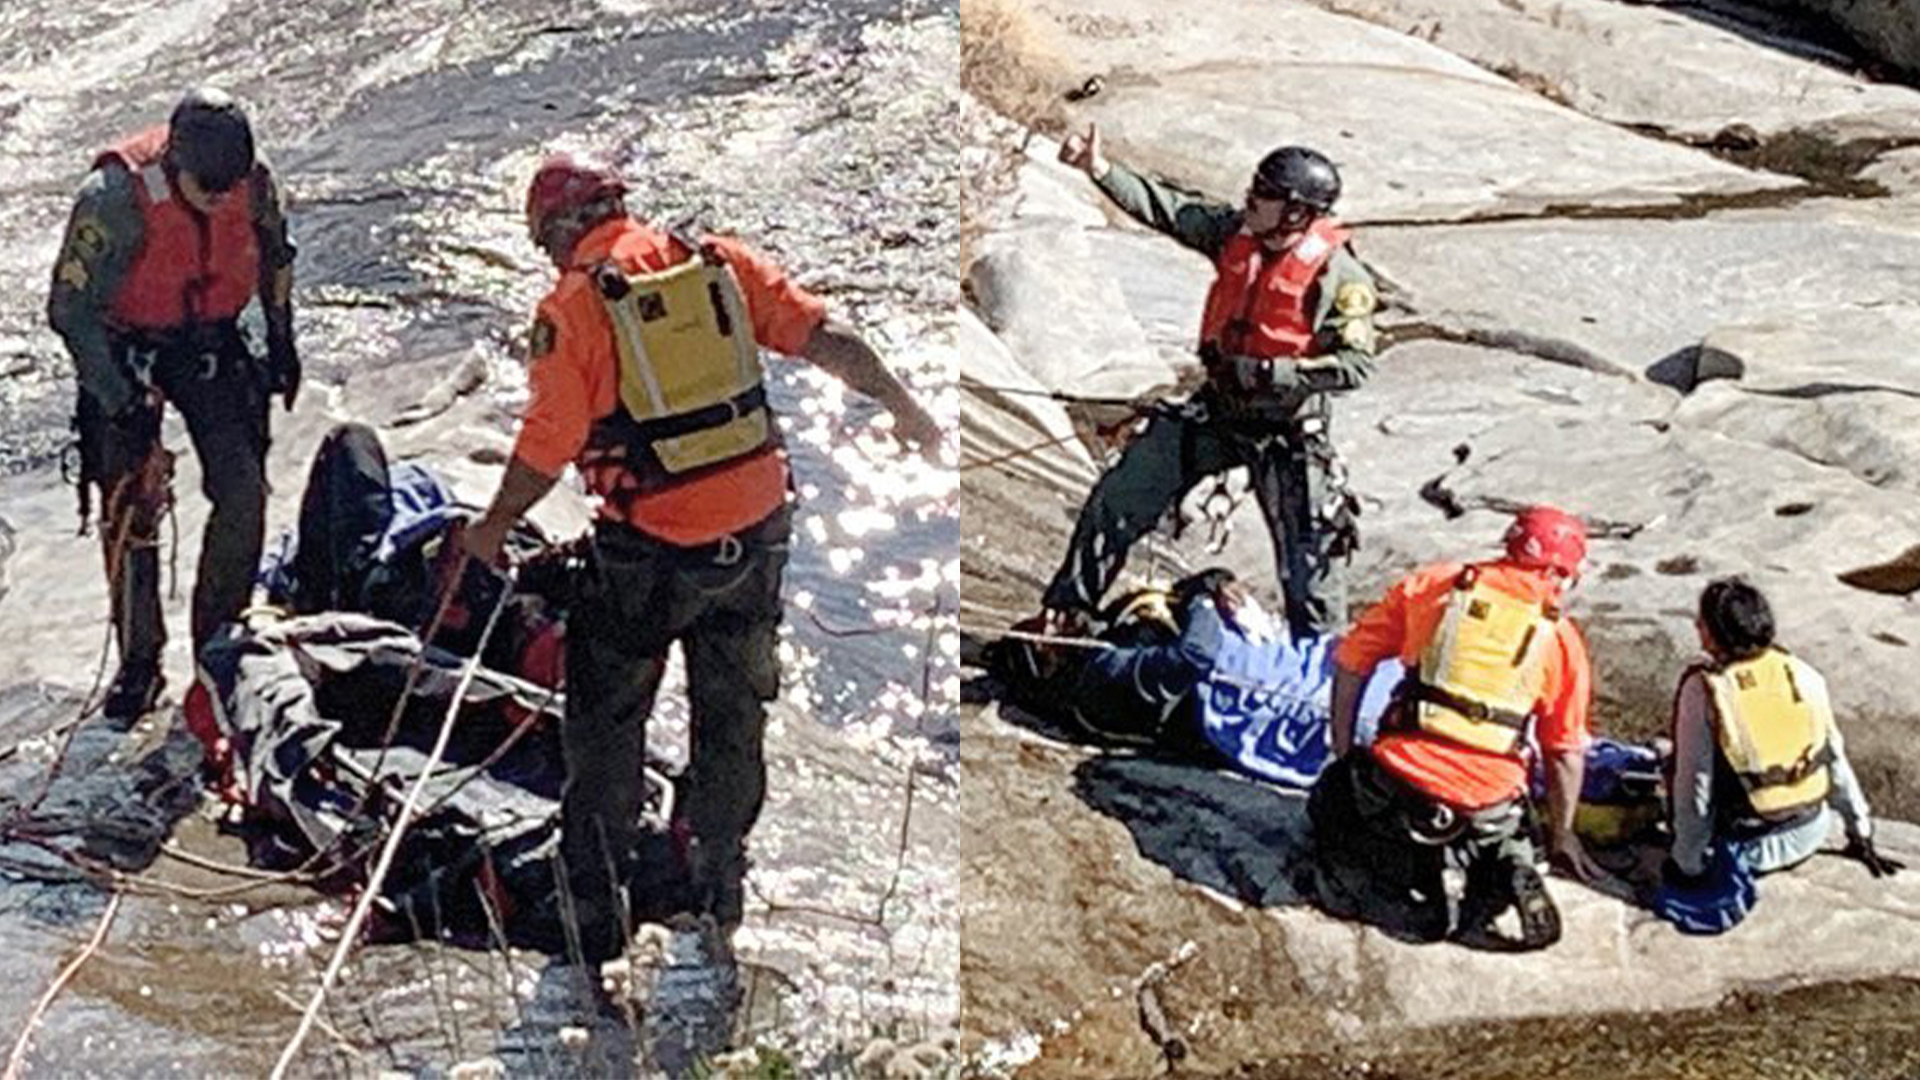 A couple from Rancho Cucamonga was rescued by California Highway Patrol in Madera County after a woman slipped into Willow Creek and her husband jumped in to rescue her. (Madera County Sheriff's Office)